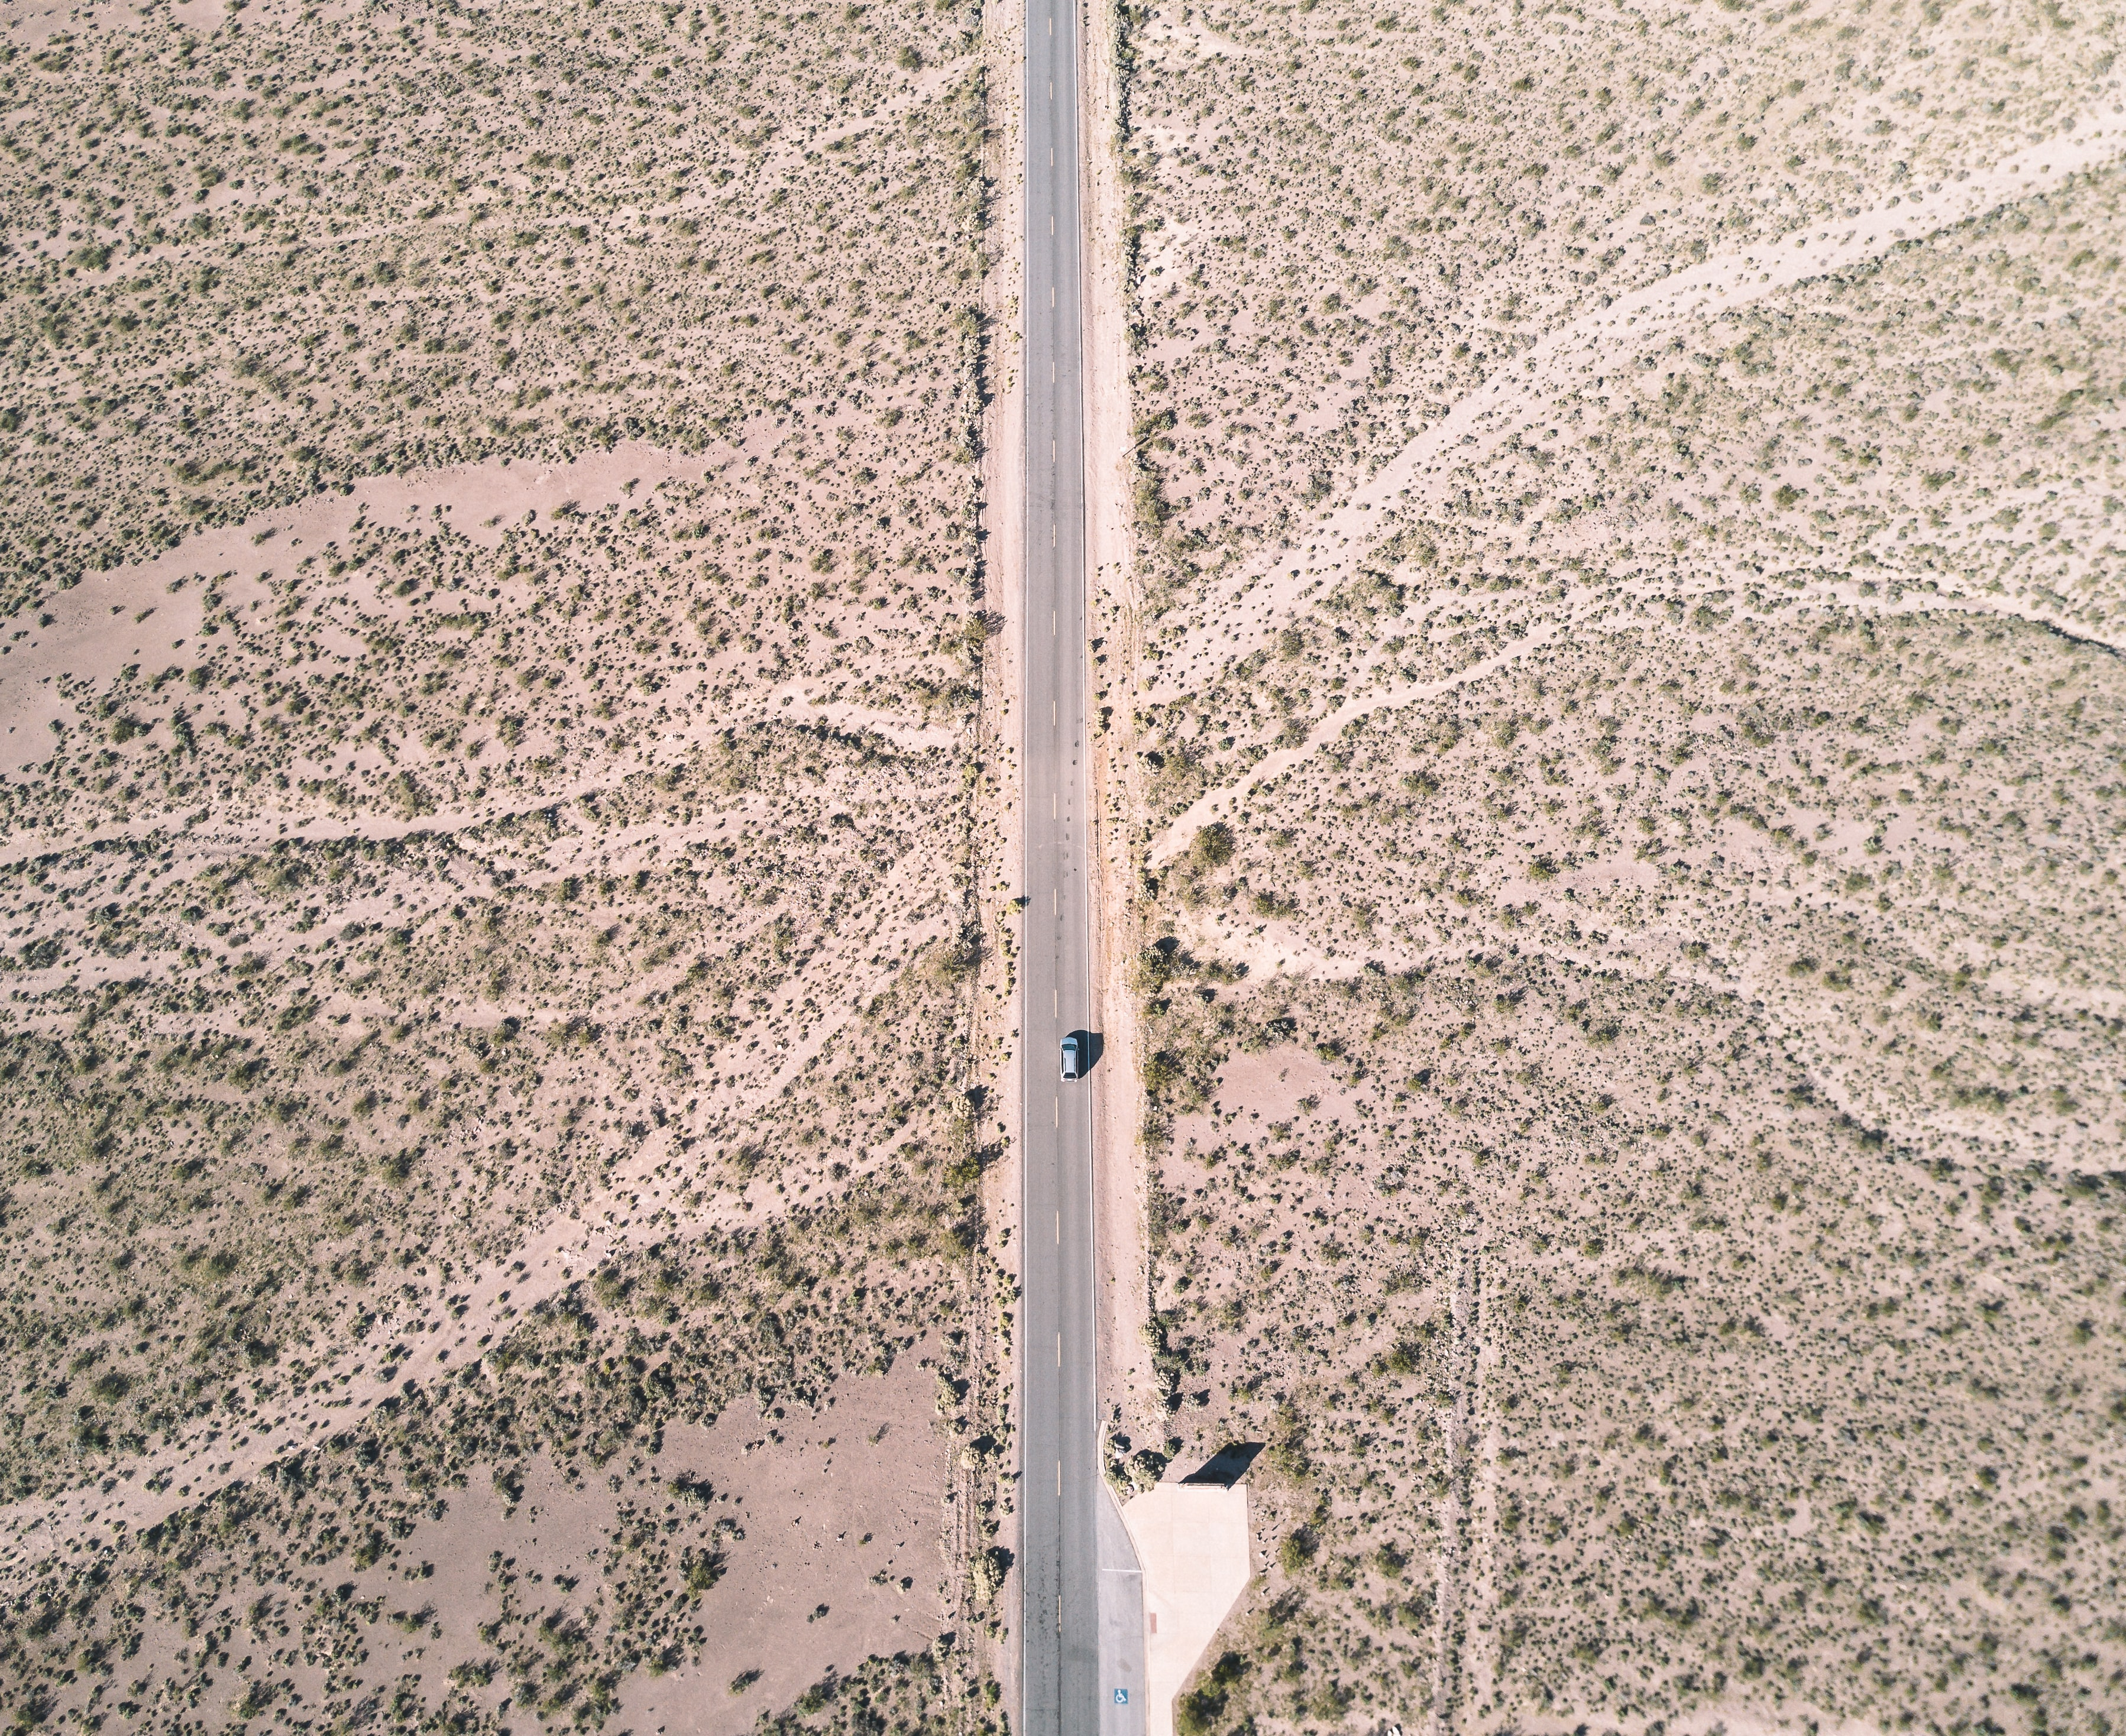 Top down view of a single blue car driving down a highway cutting through a desert in Nevada.